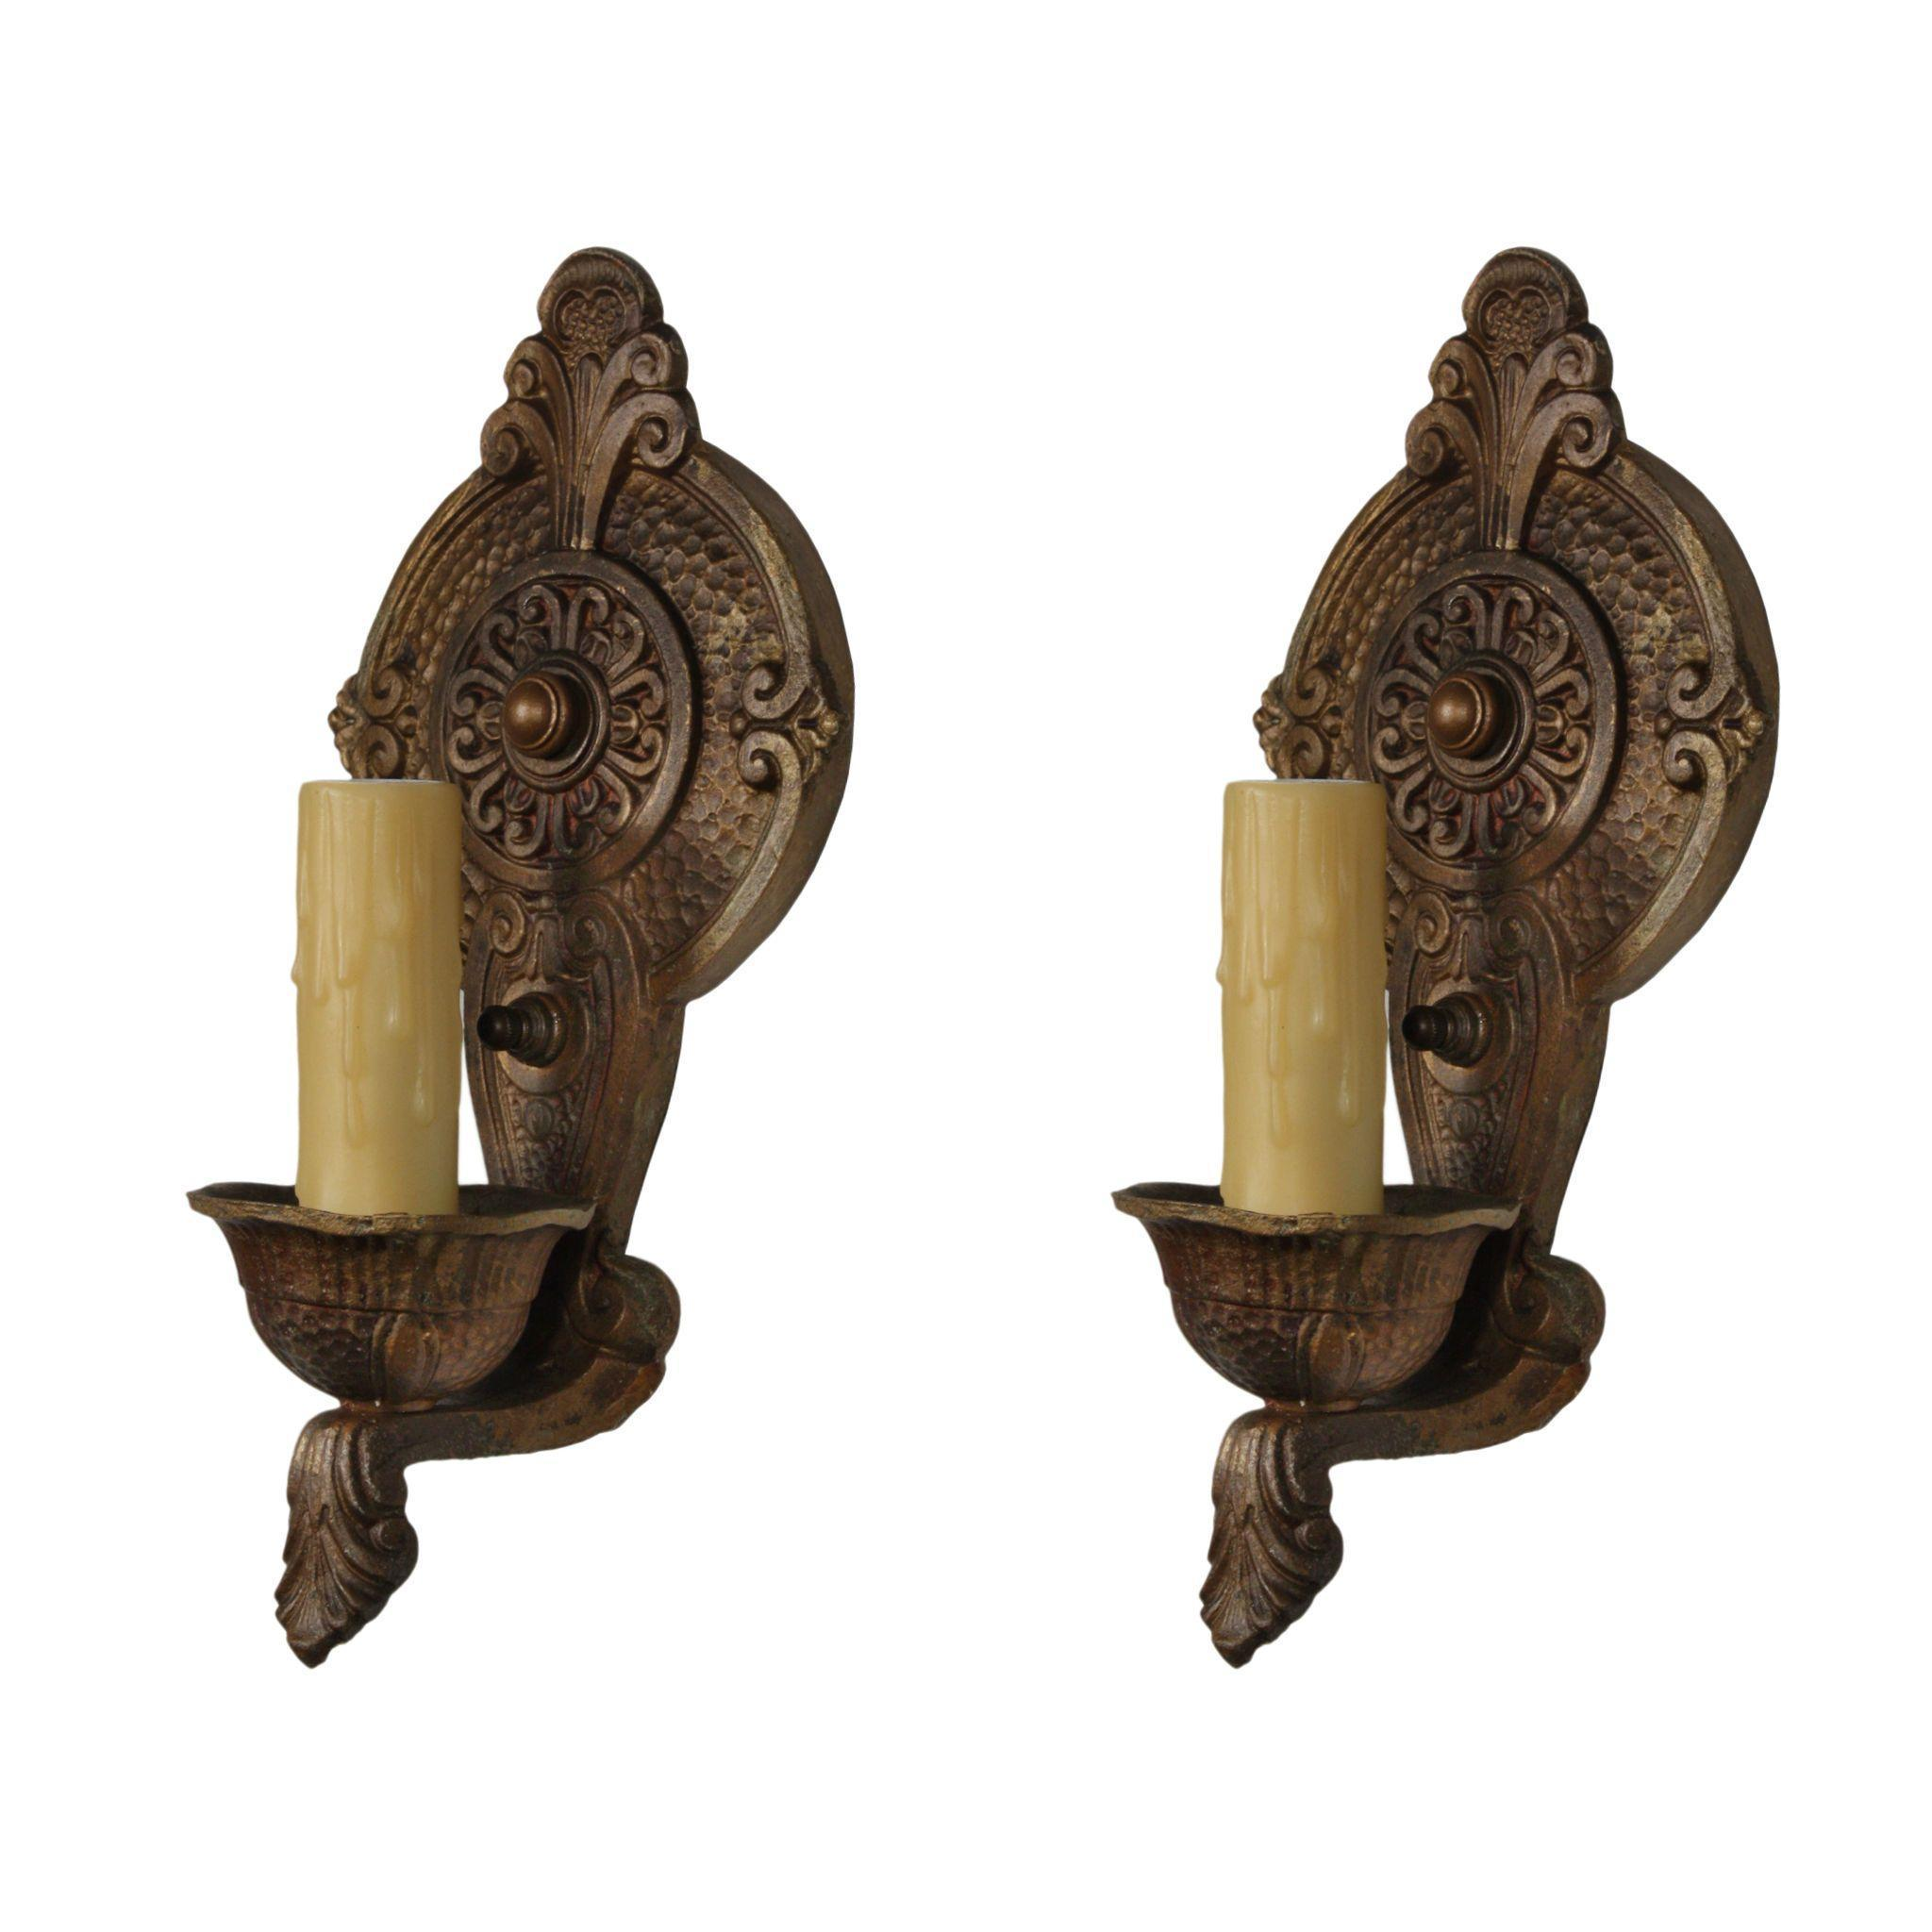 Marvelous Pair of Antique Single-Arm Sconces by Lincoln, Early 1900s